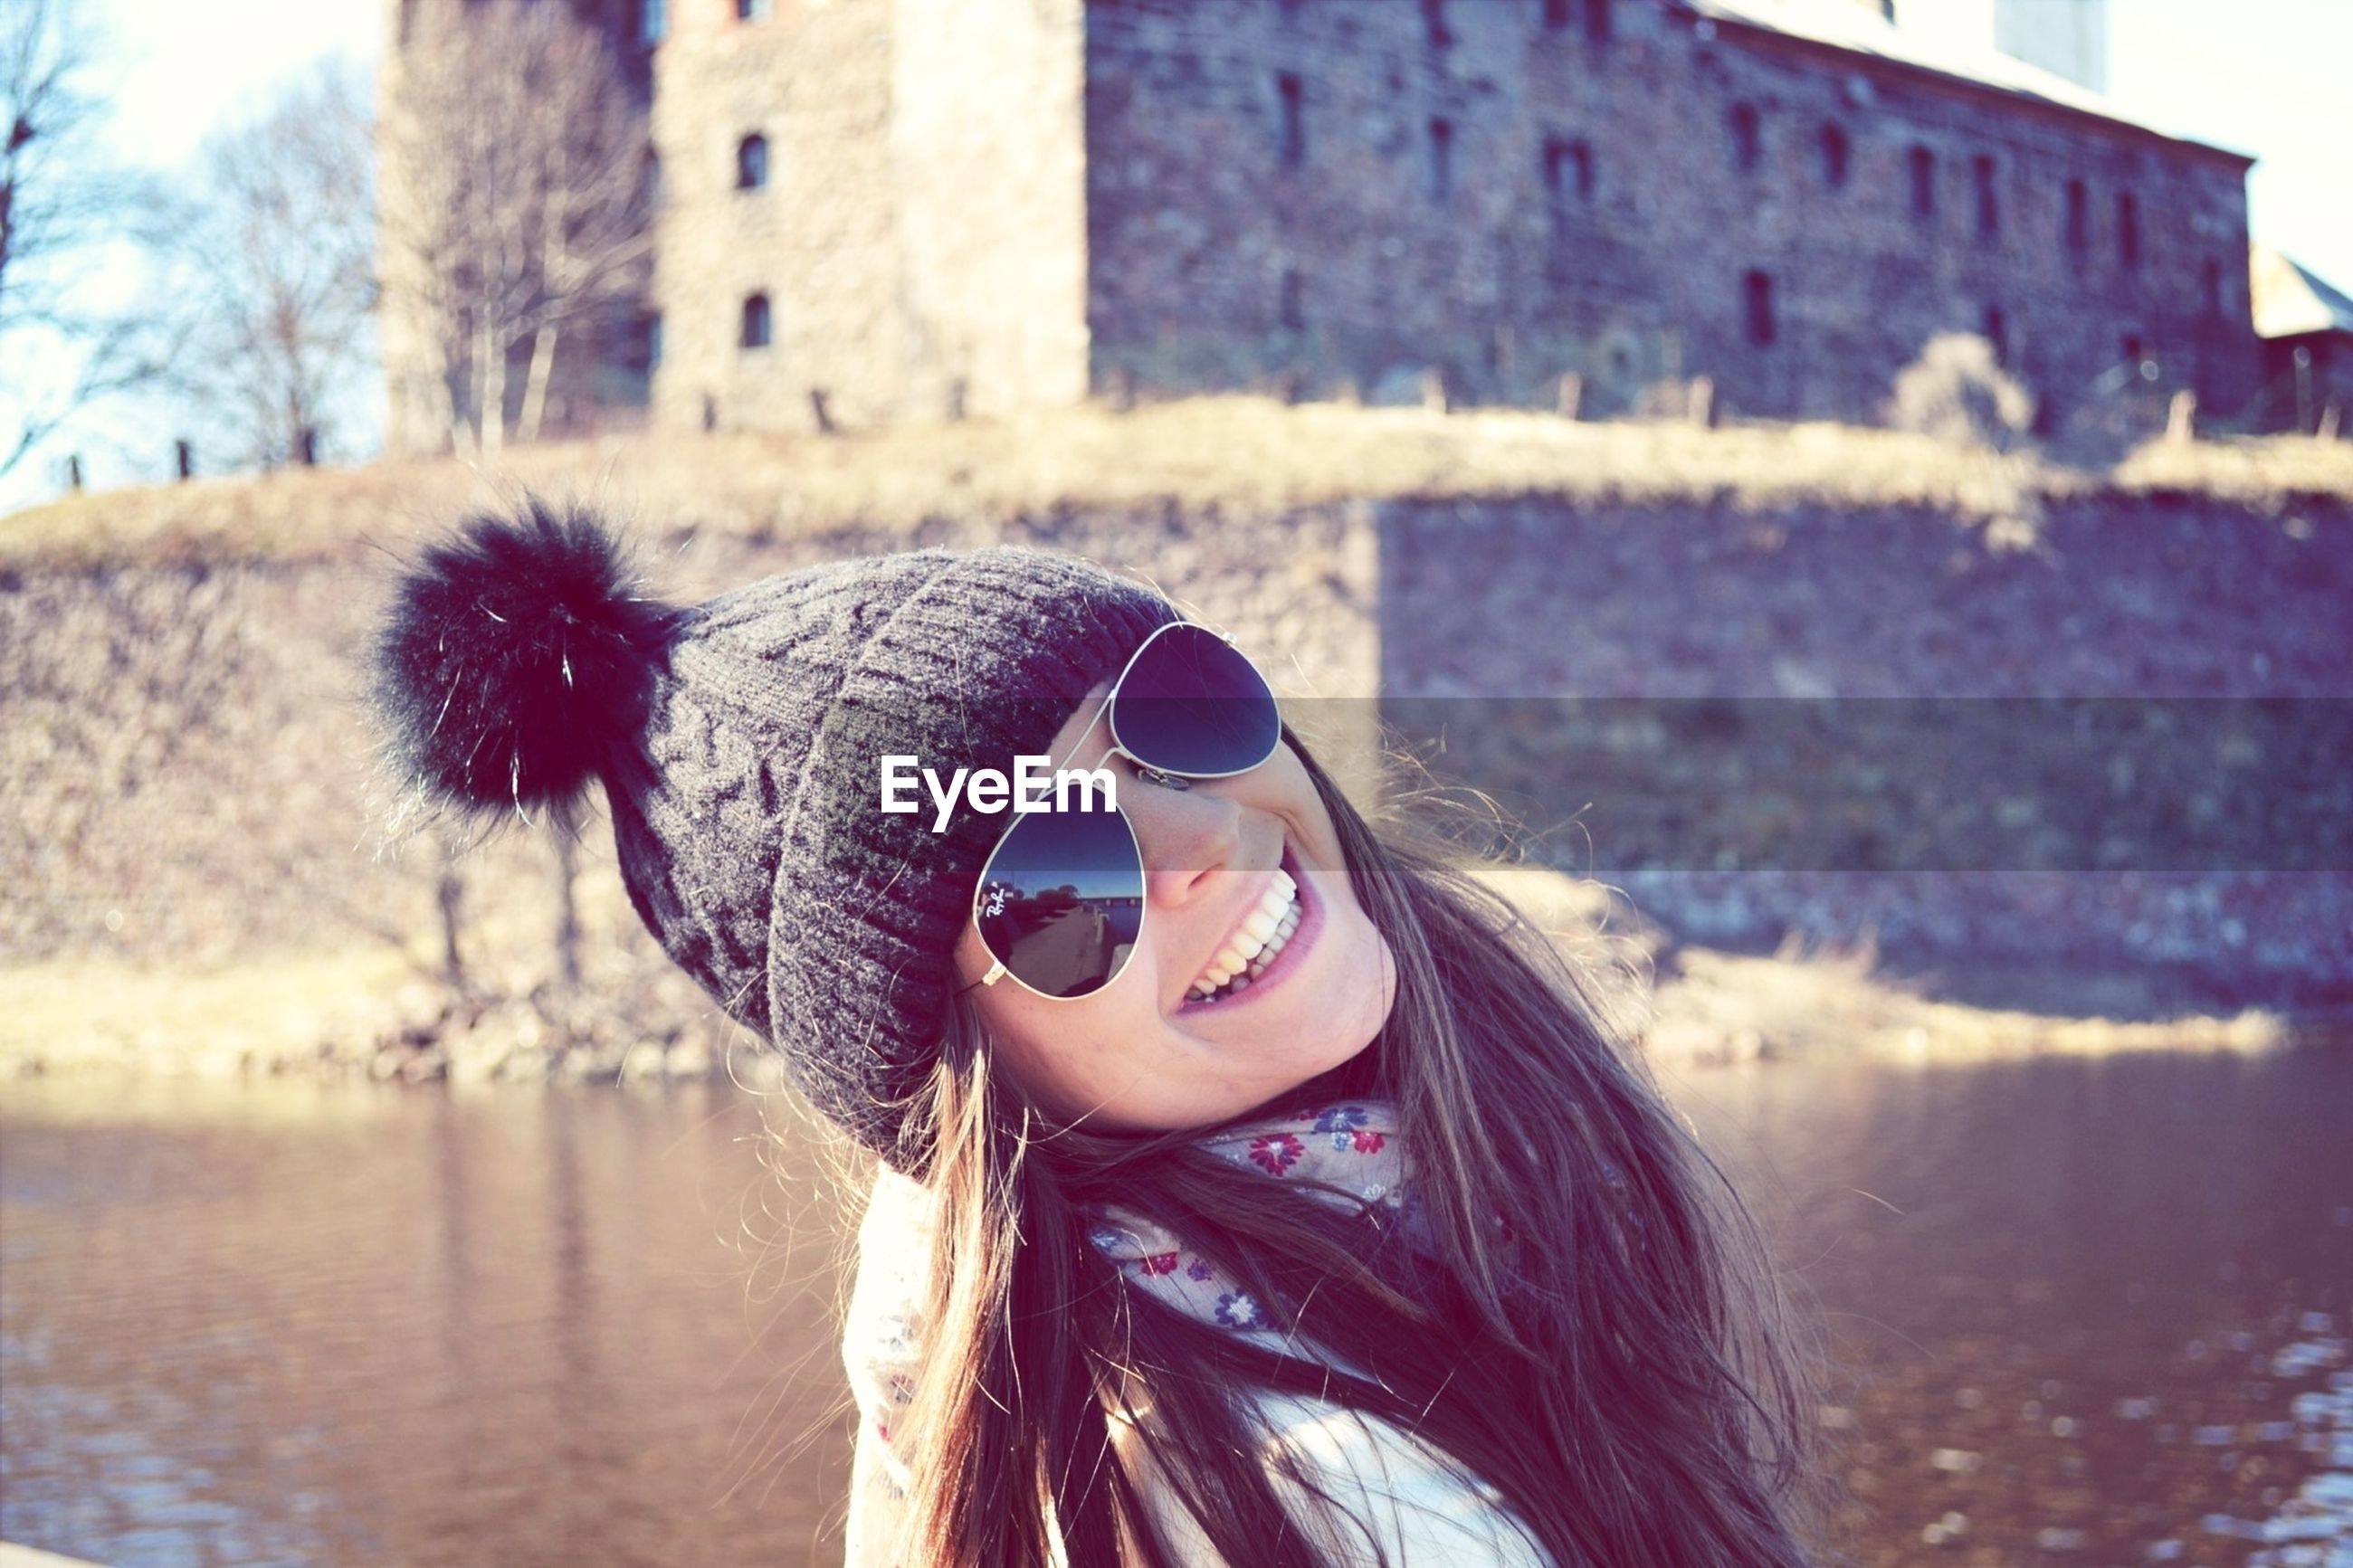 young adult, water, focus on foreground, sunglasses, young women, long hair, lifestyles, leisure activity, portrait, headshot, looking at camera, person, front view, building exterior, day, smiling, built structure